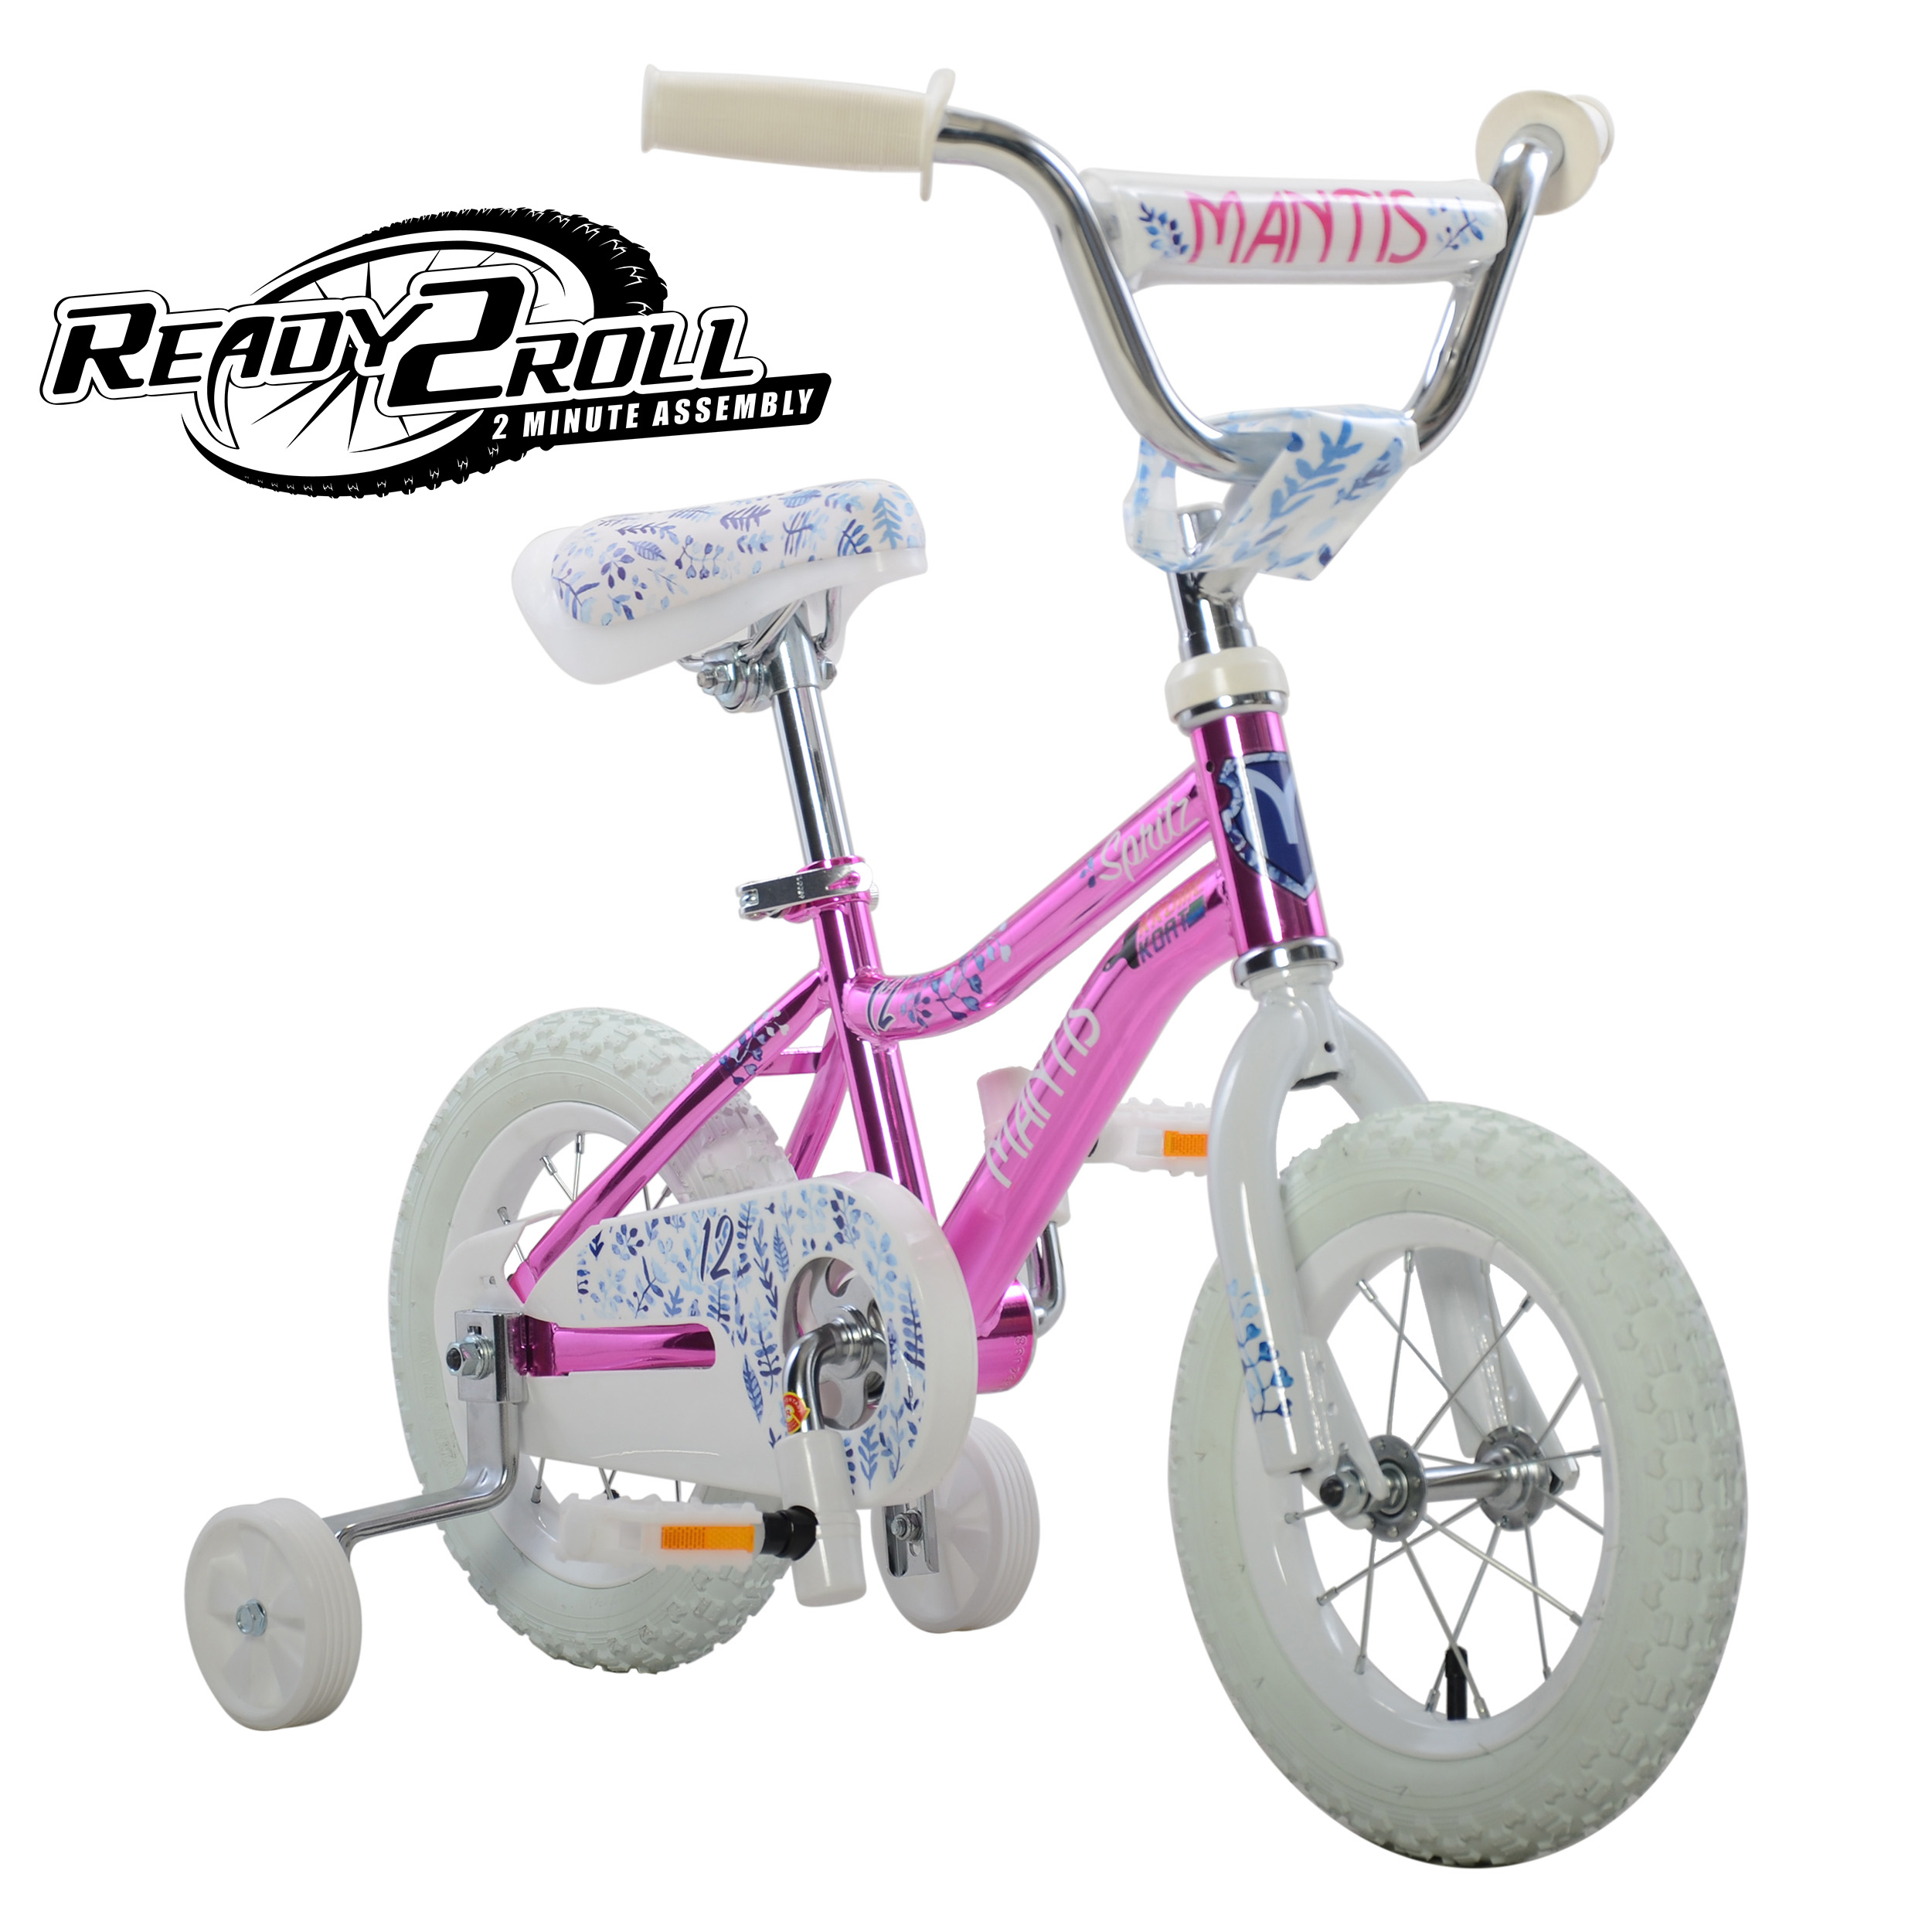 Spritz White Ready2Roll 16 inch Kids Bicycle with Holiday Bonus Gloves